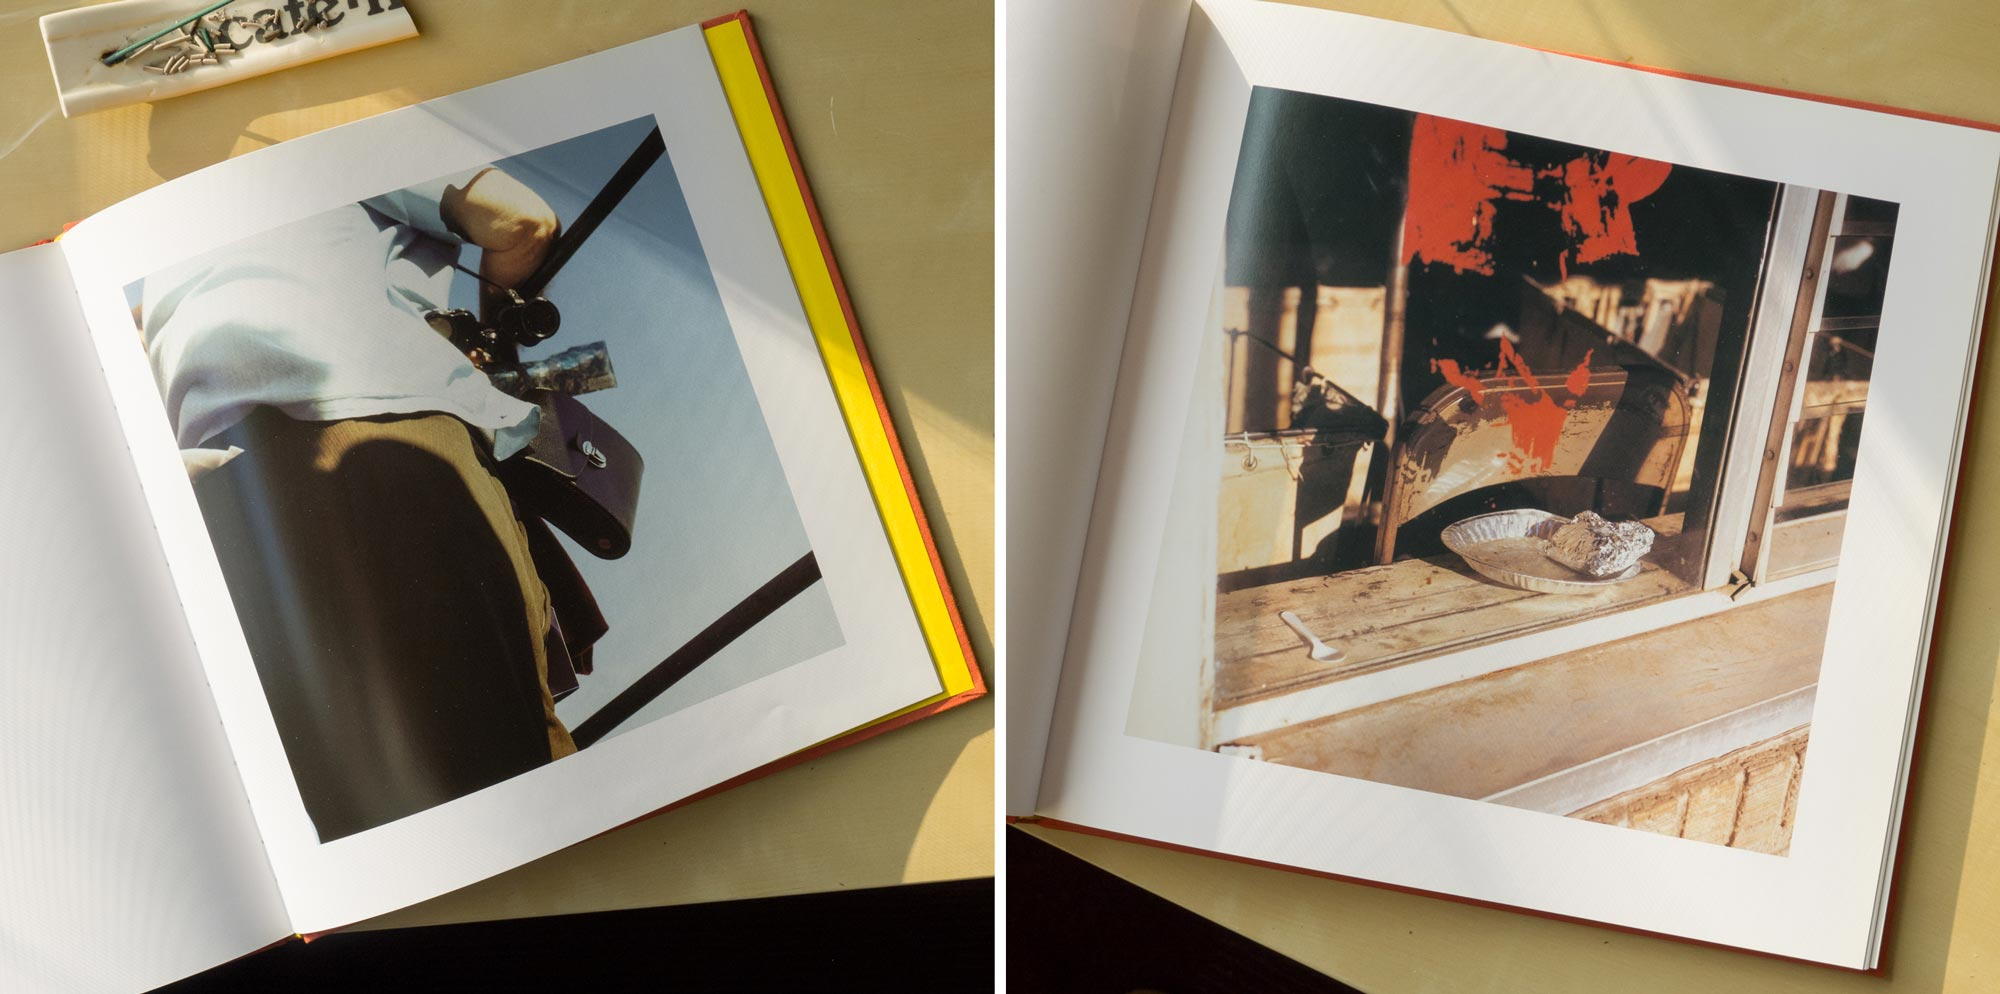 Coffee Table Collection William Eggleston 2¼ and For Now – CAFE